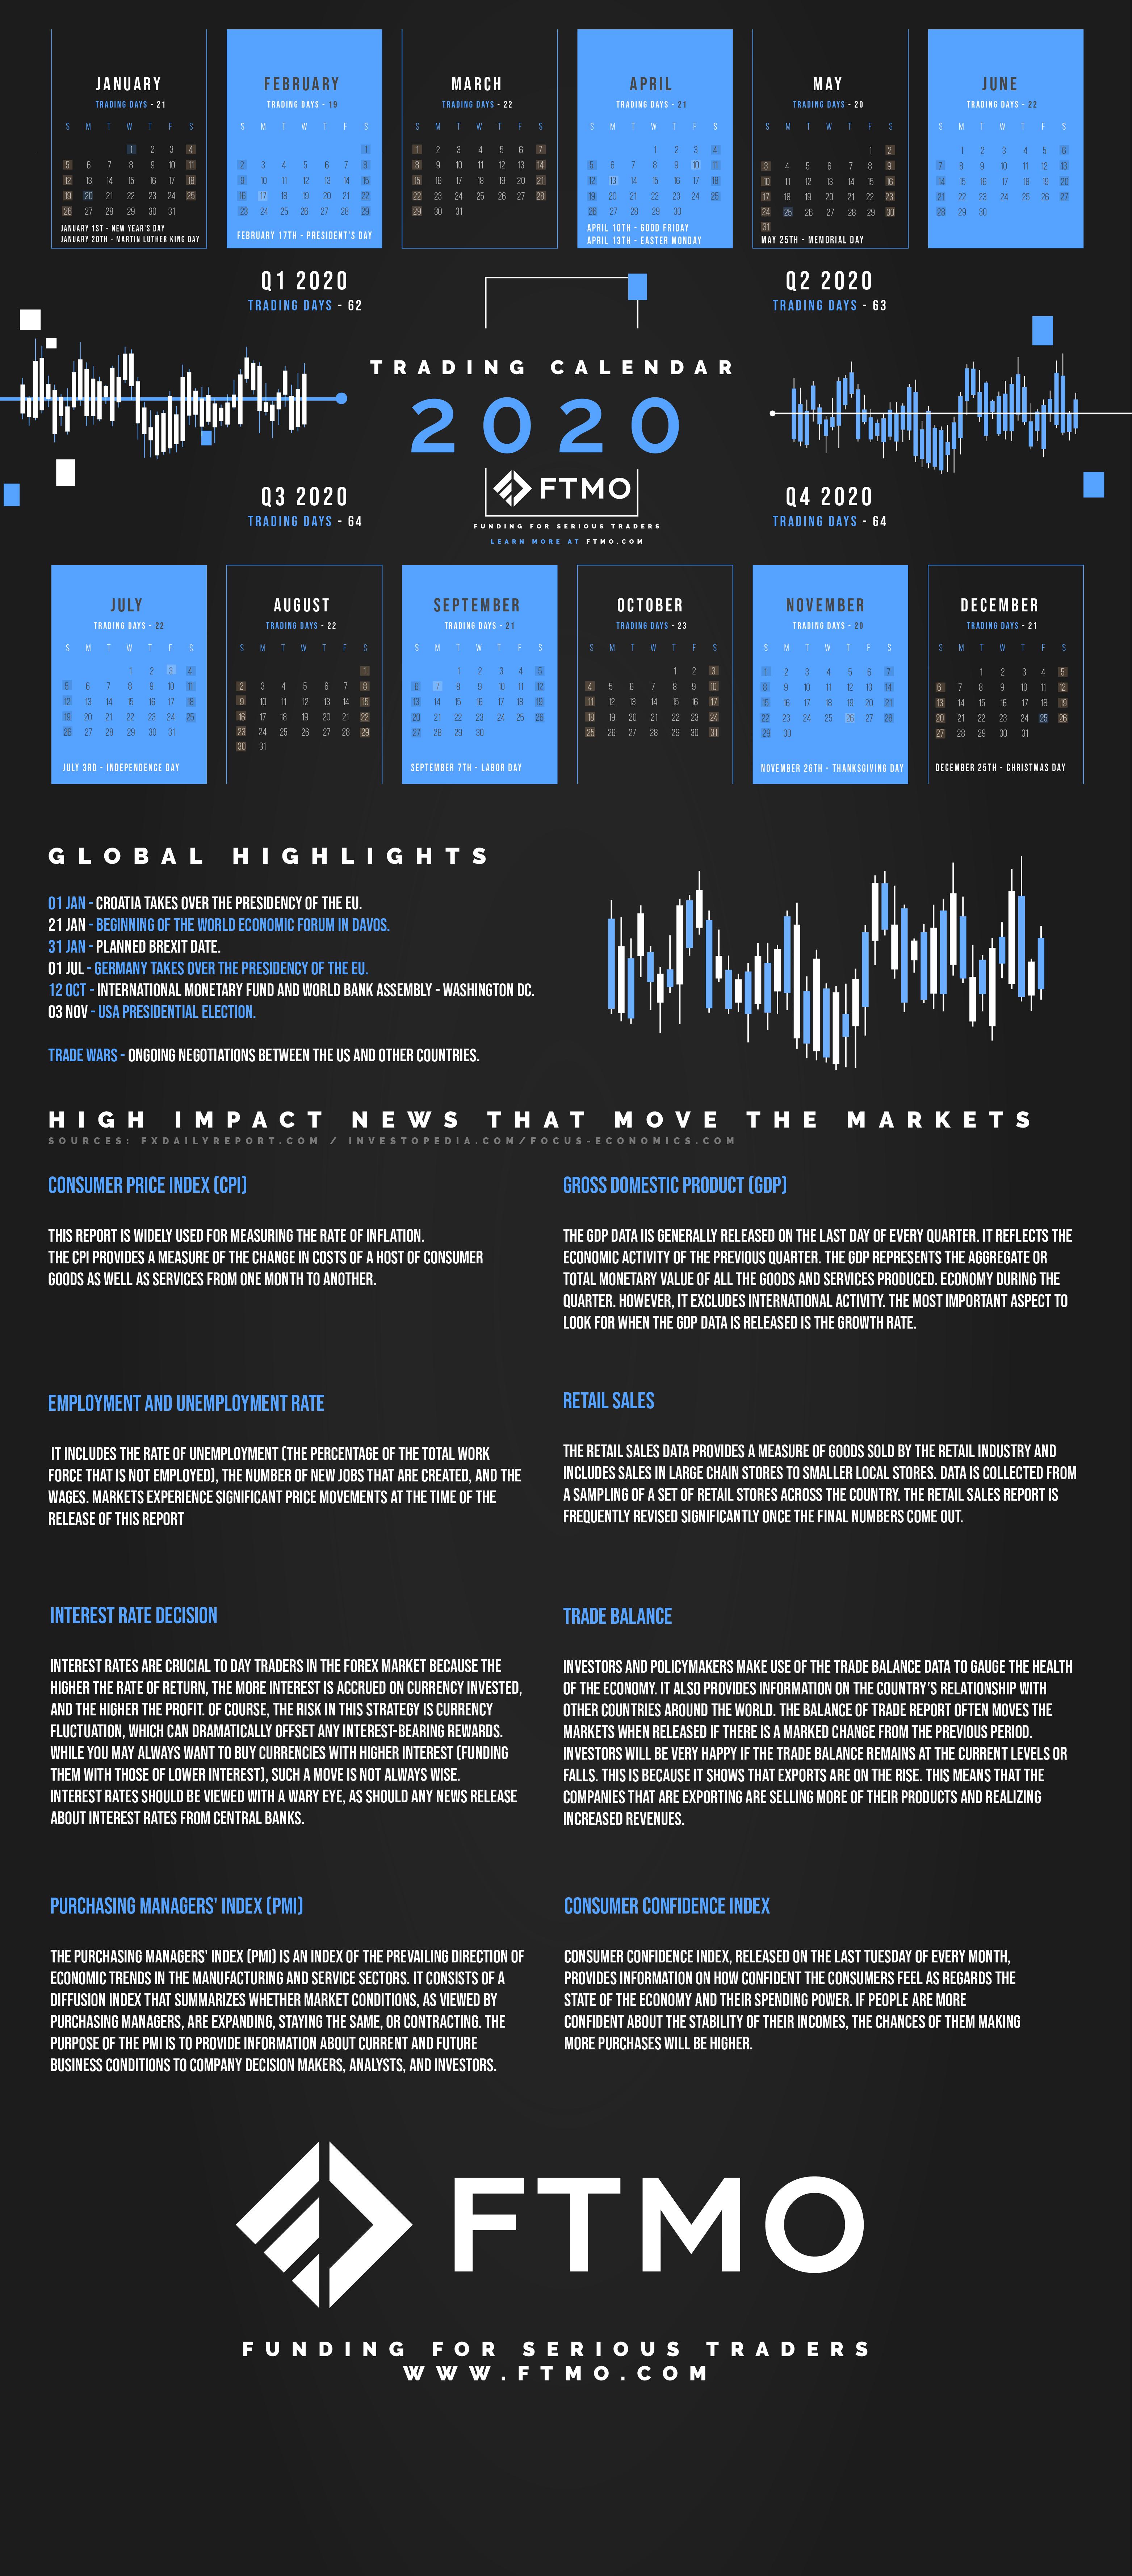 Forex Trading Holidays & Calendar in 2020